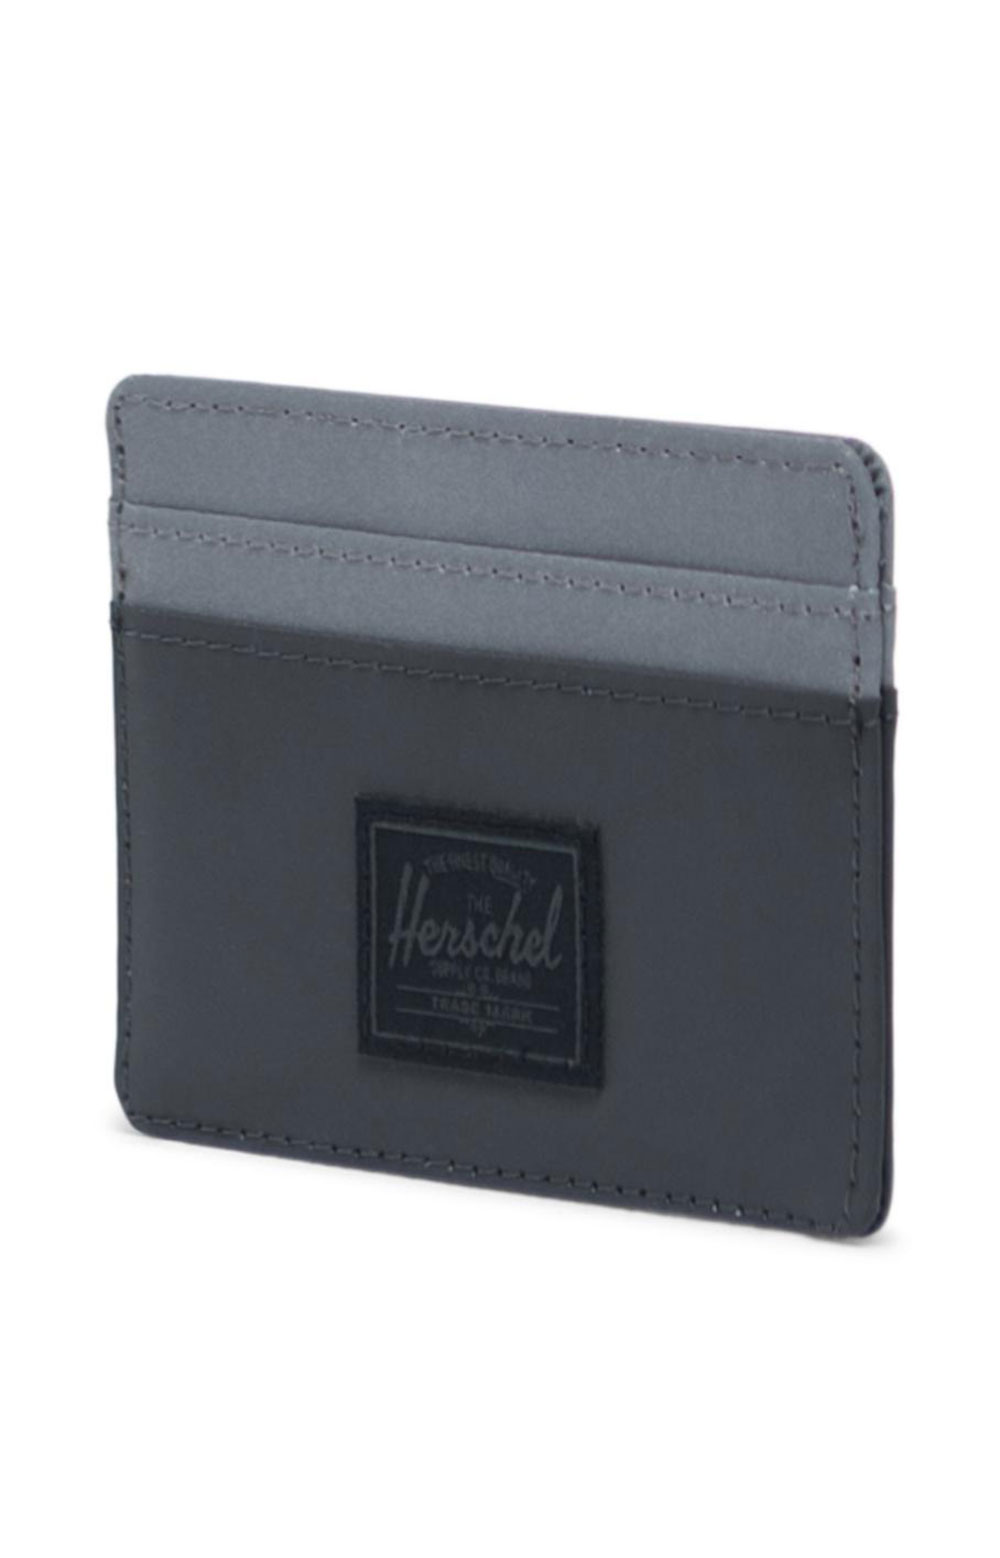 Charlie Reflective Wallet - Black/Silver 3